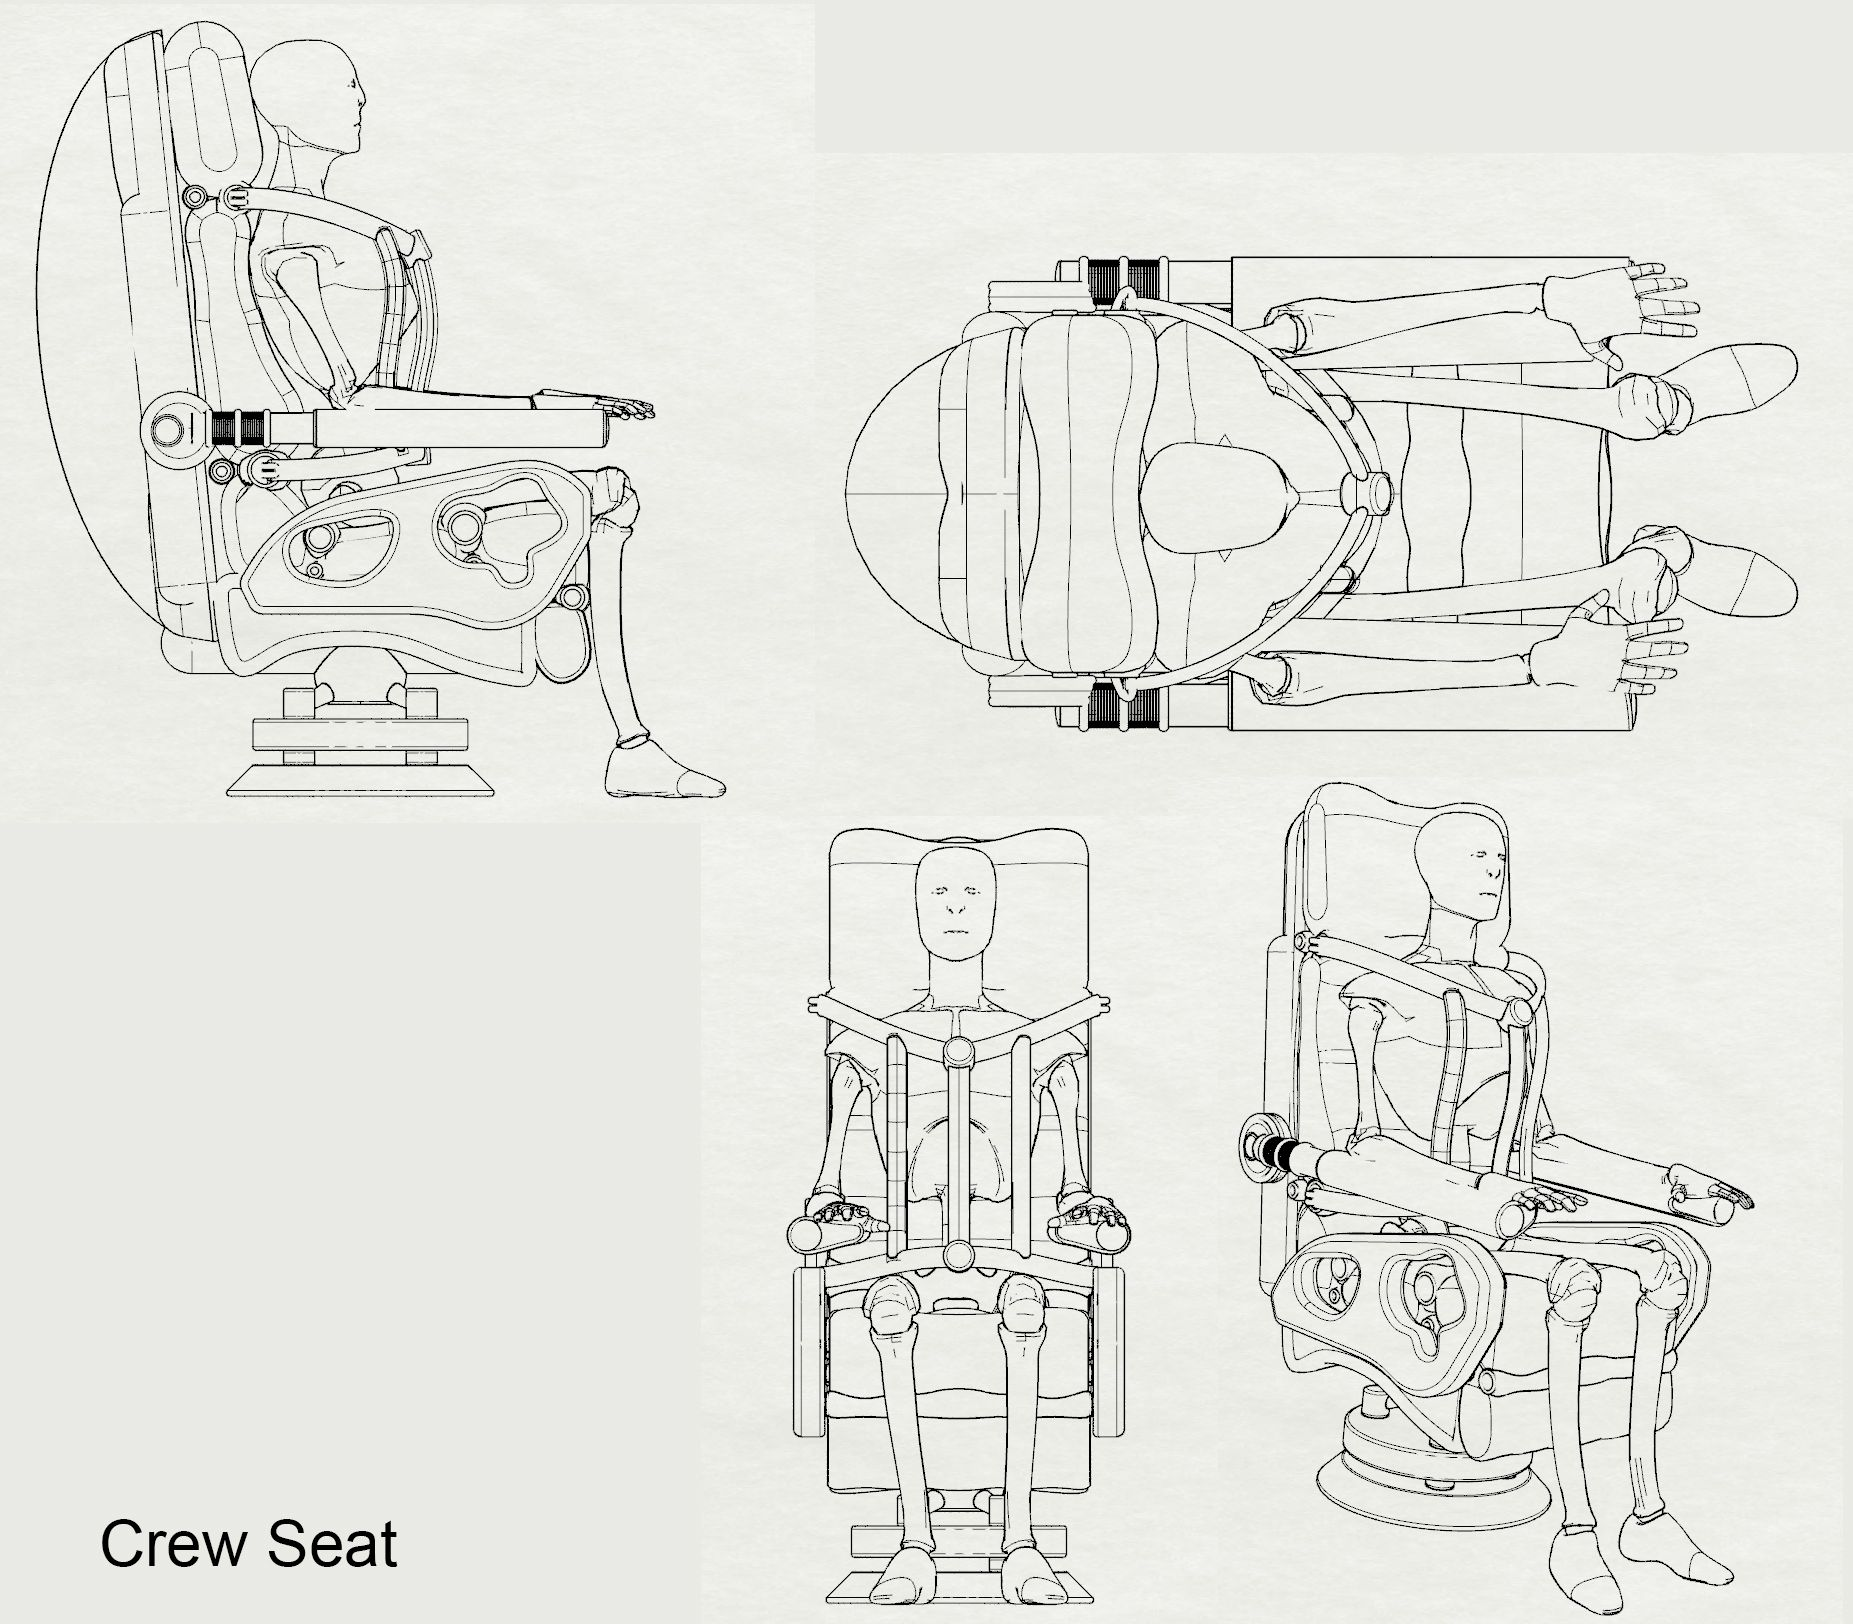 Crew Seat Consolidated View